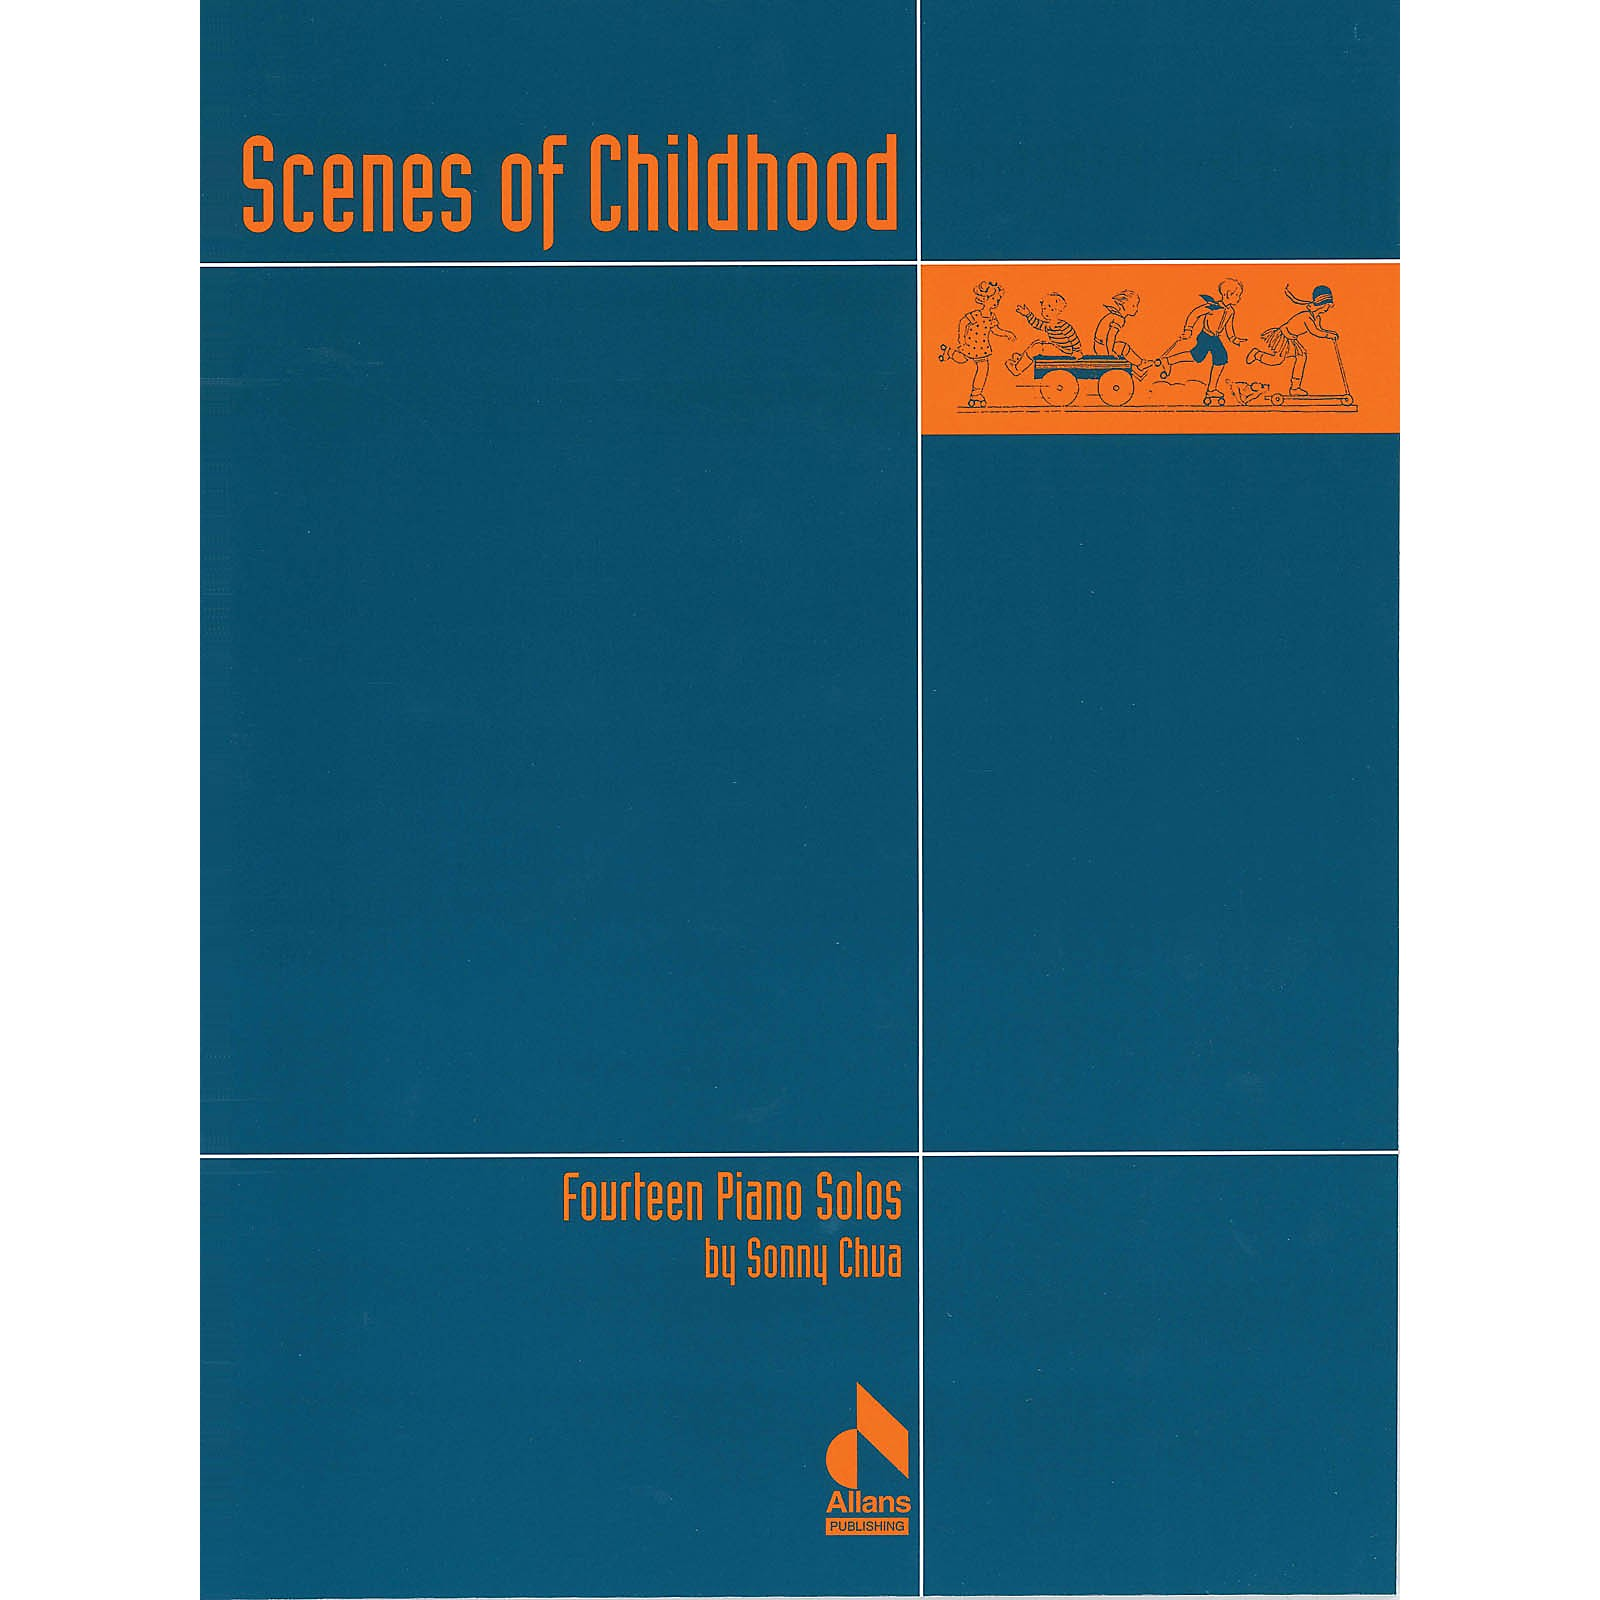 Allans Publishing Scenes of Childhood (Fourteen Piano Solos) Piano Solo Series Softcover